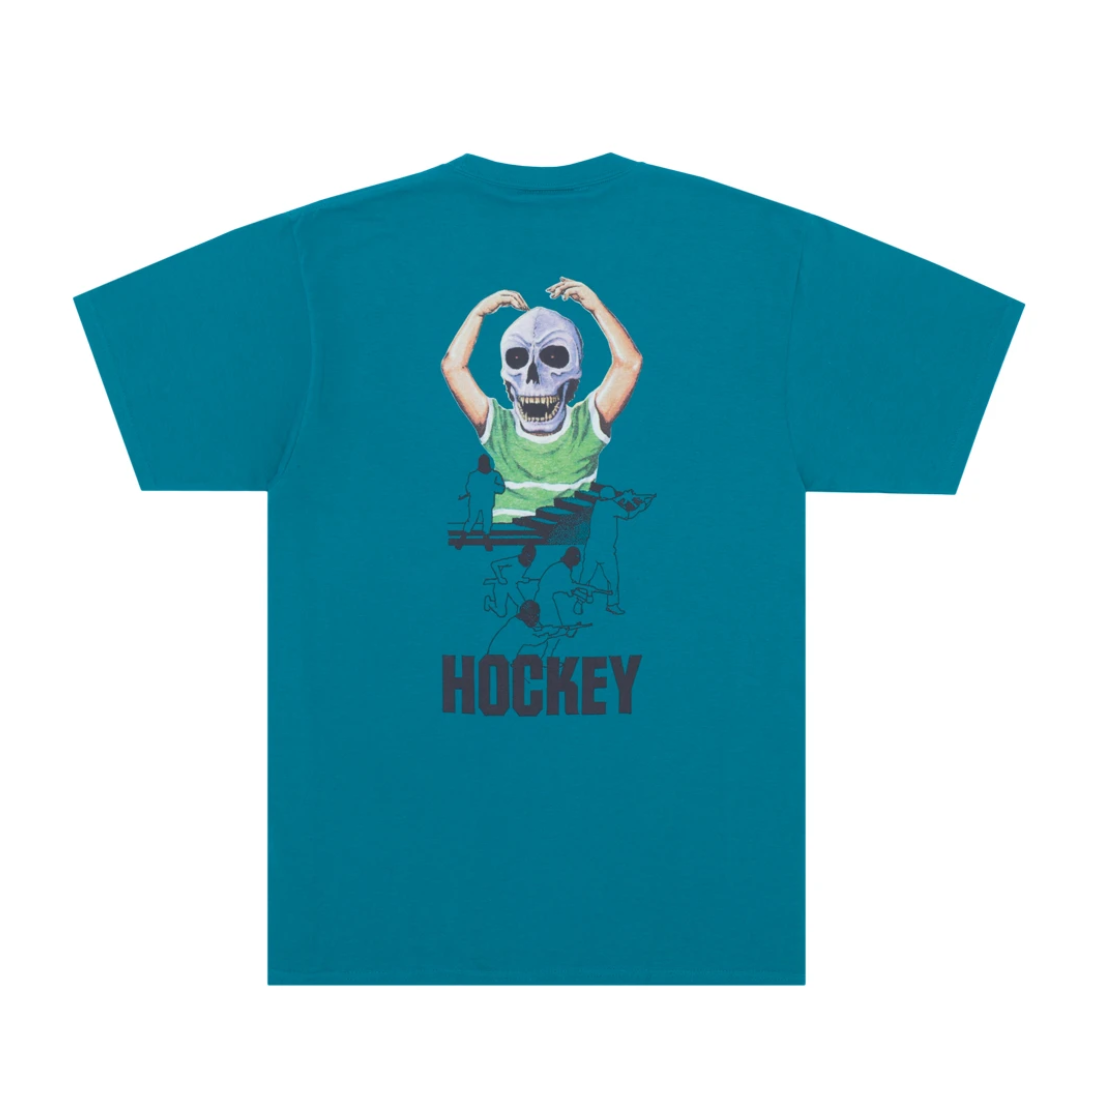 【Hockey】Skull Kid Tee - Teal